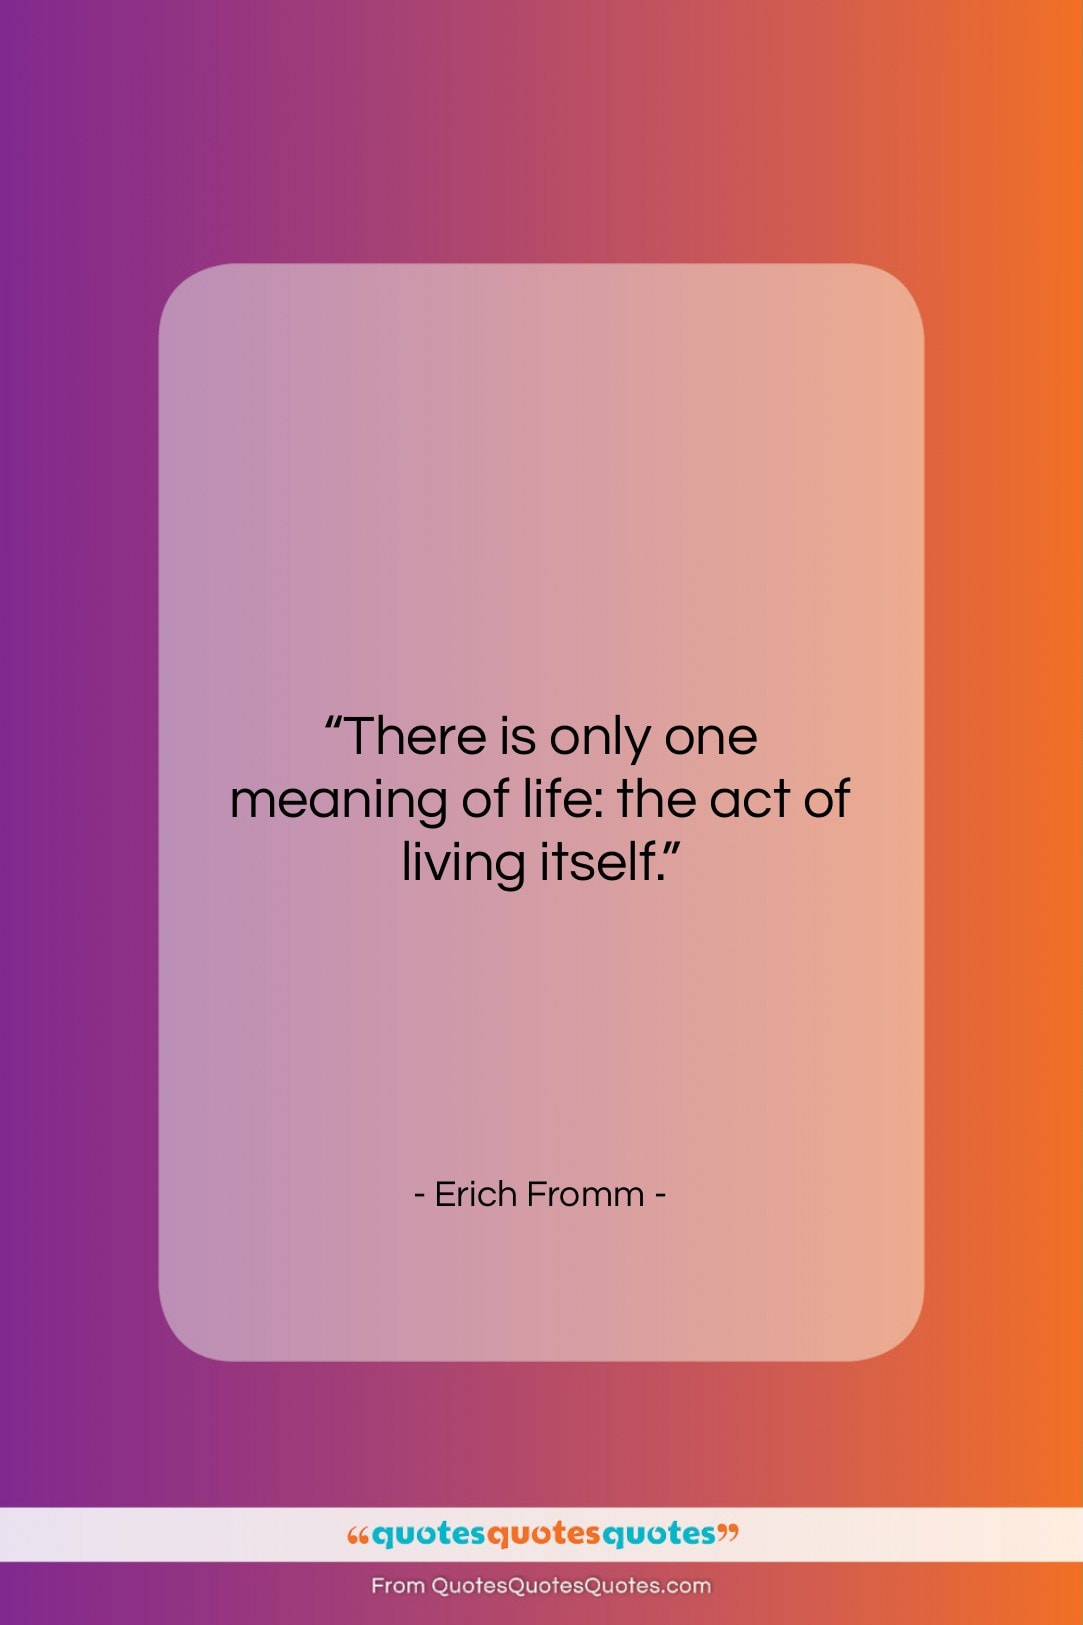 """Erich Fromm quote: """"There is only one meaning of life:…""""- at QuotesQuotesQuotes.com"""